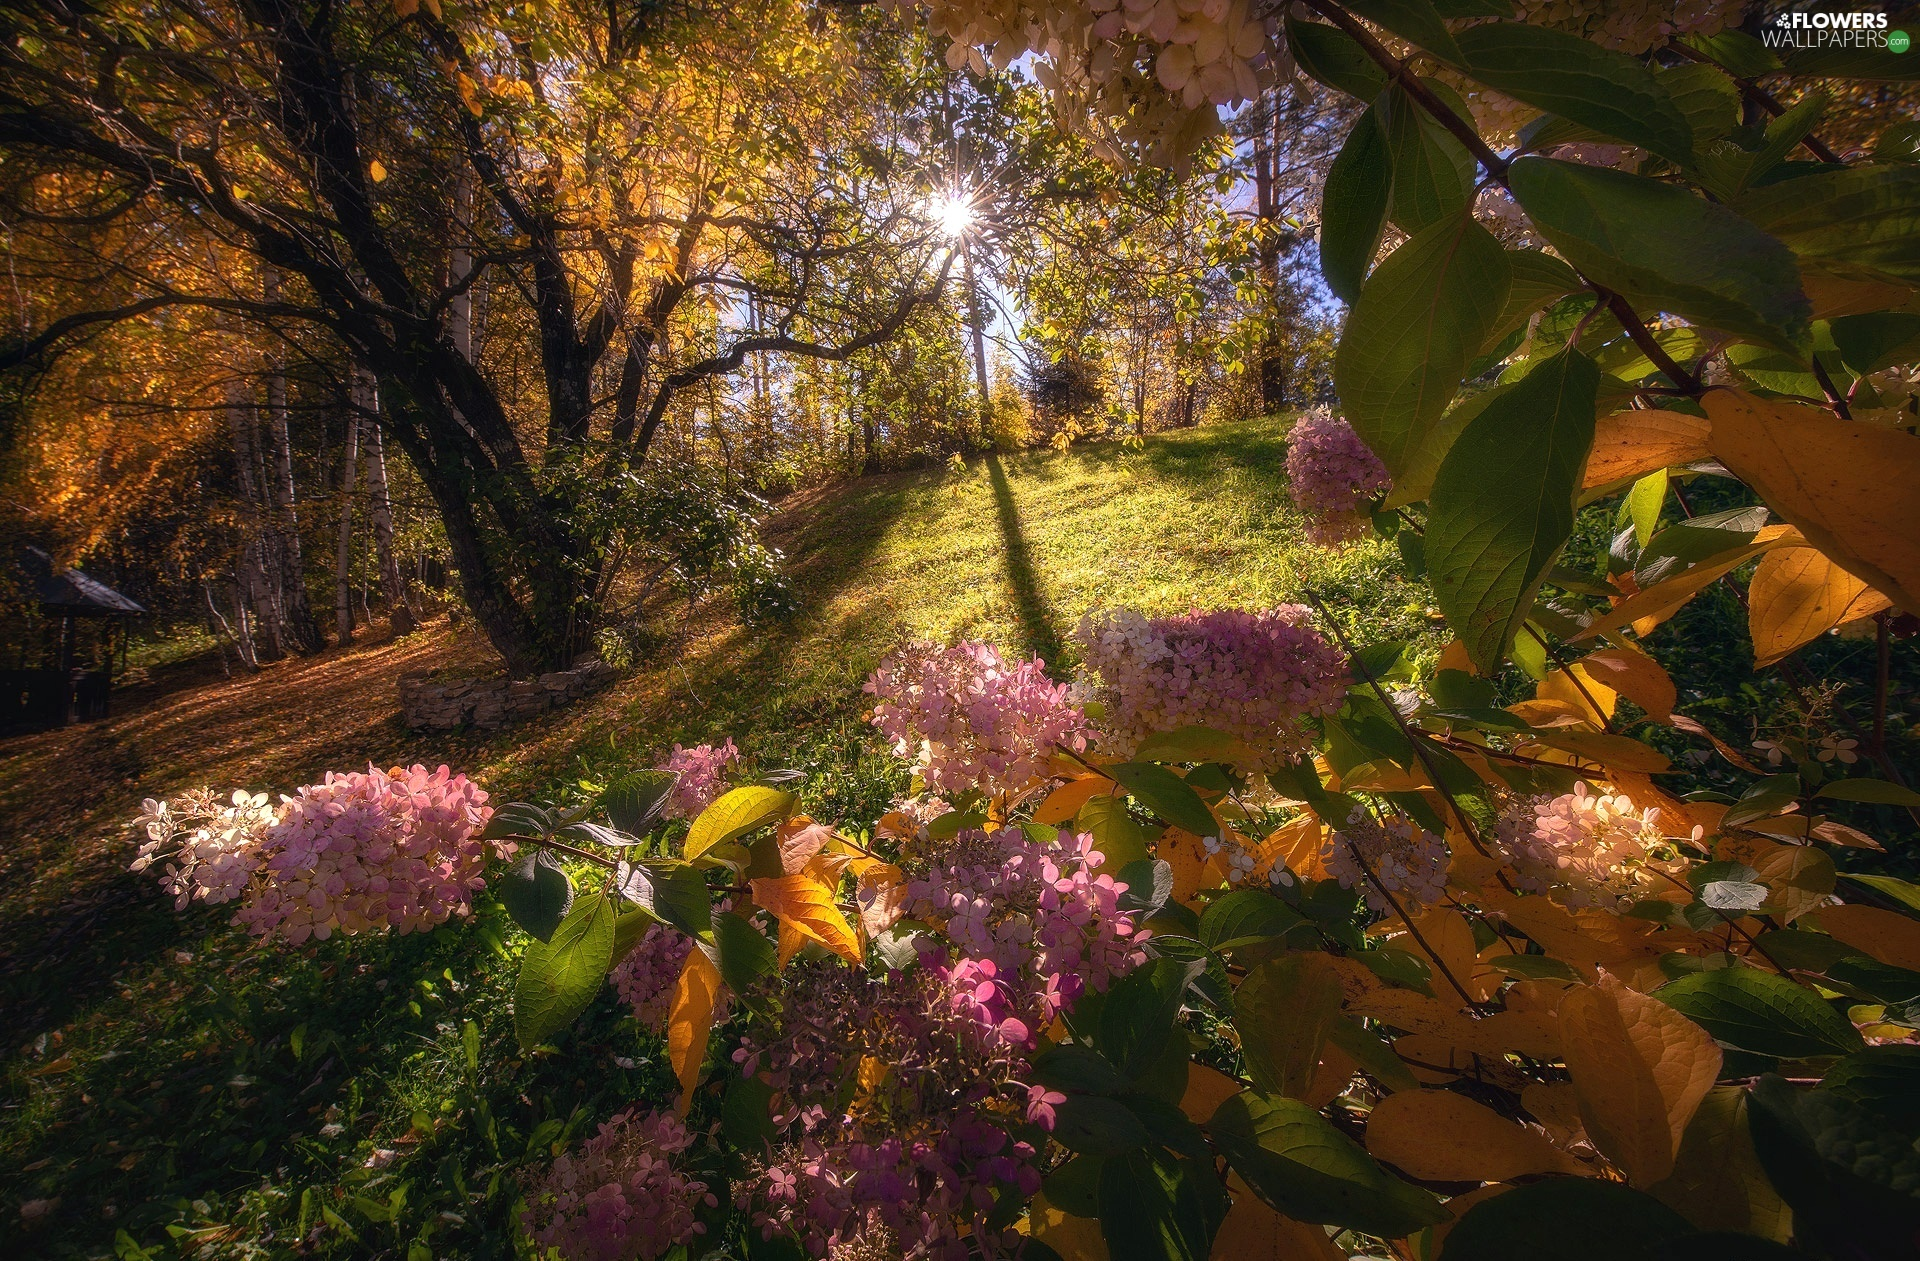 trees, Flowers, autumn, rays of the Sun, viewes, hydrangeas